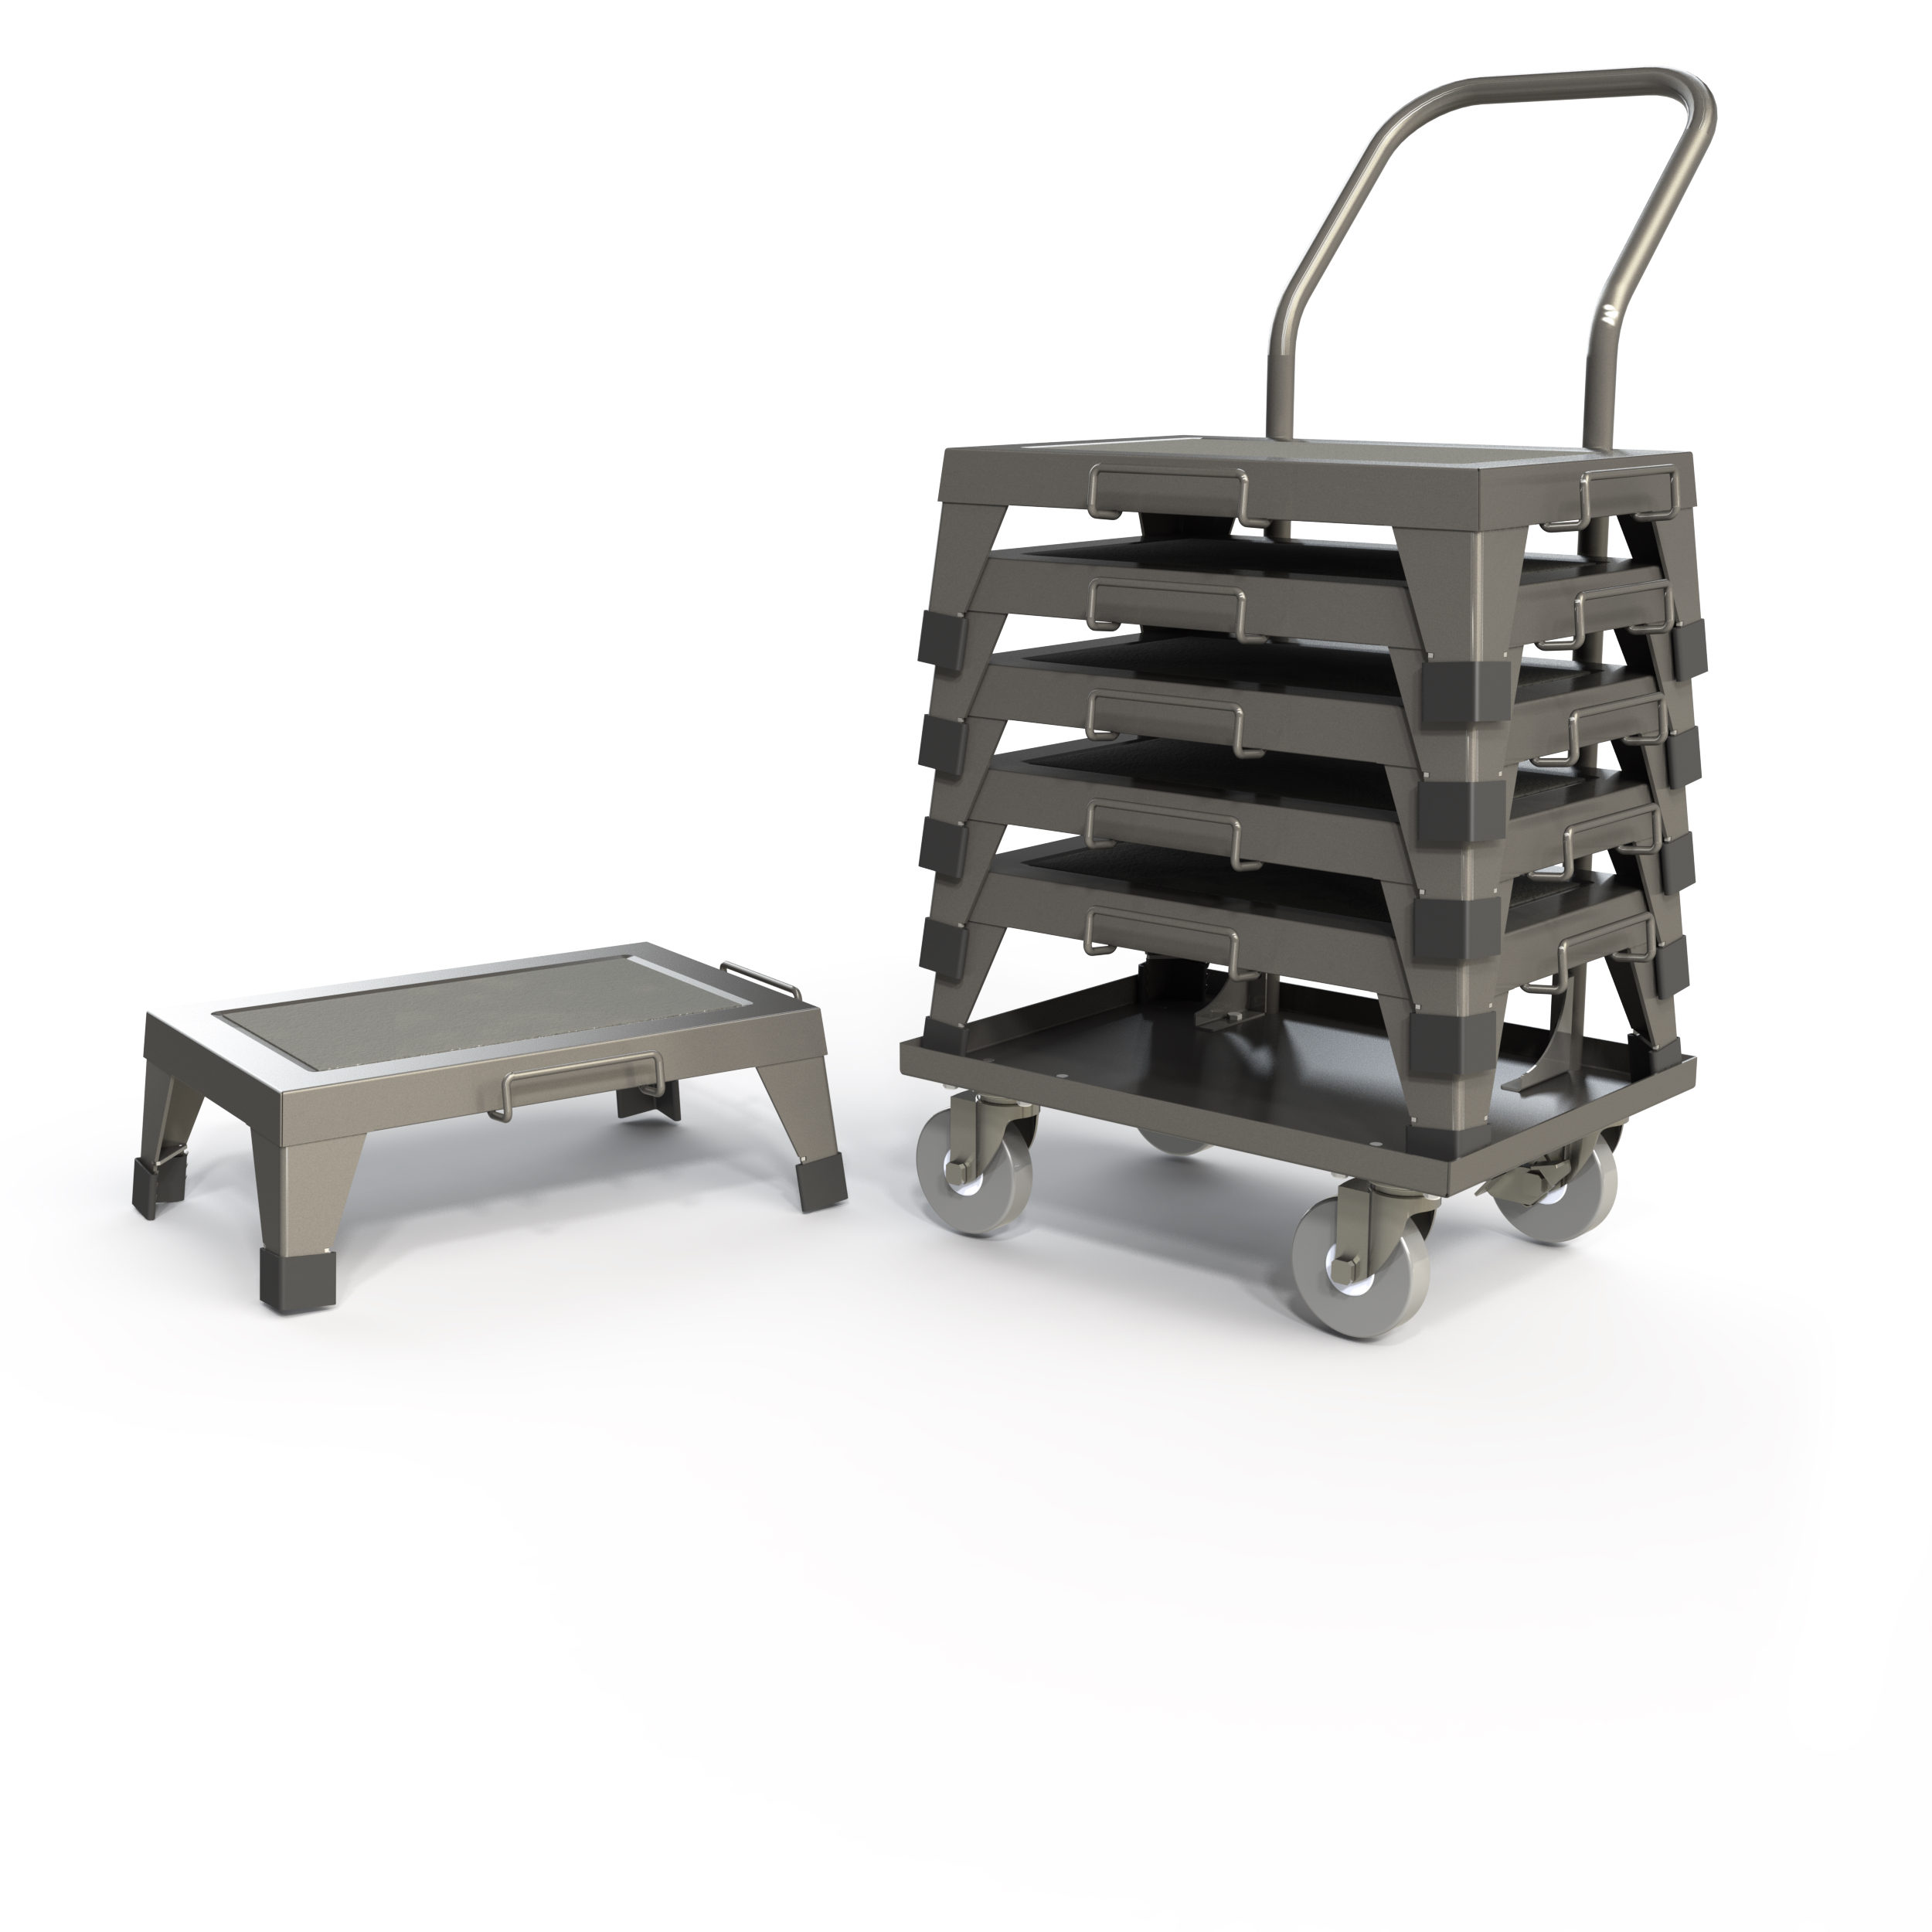 STS121805 (single step stool) with T0800 (transport cart).jpg